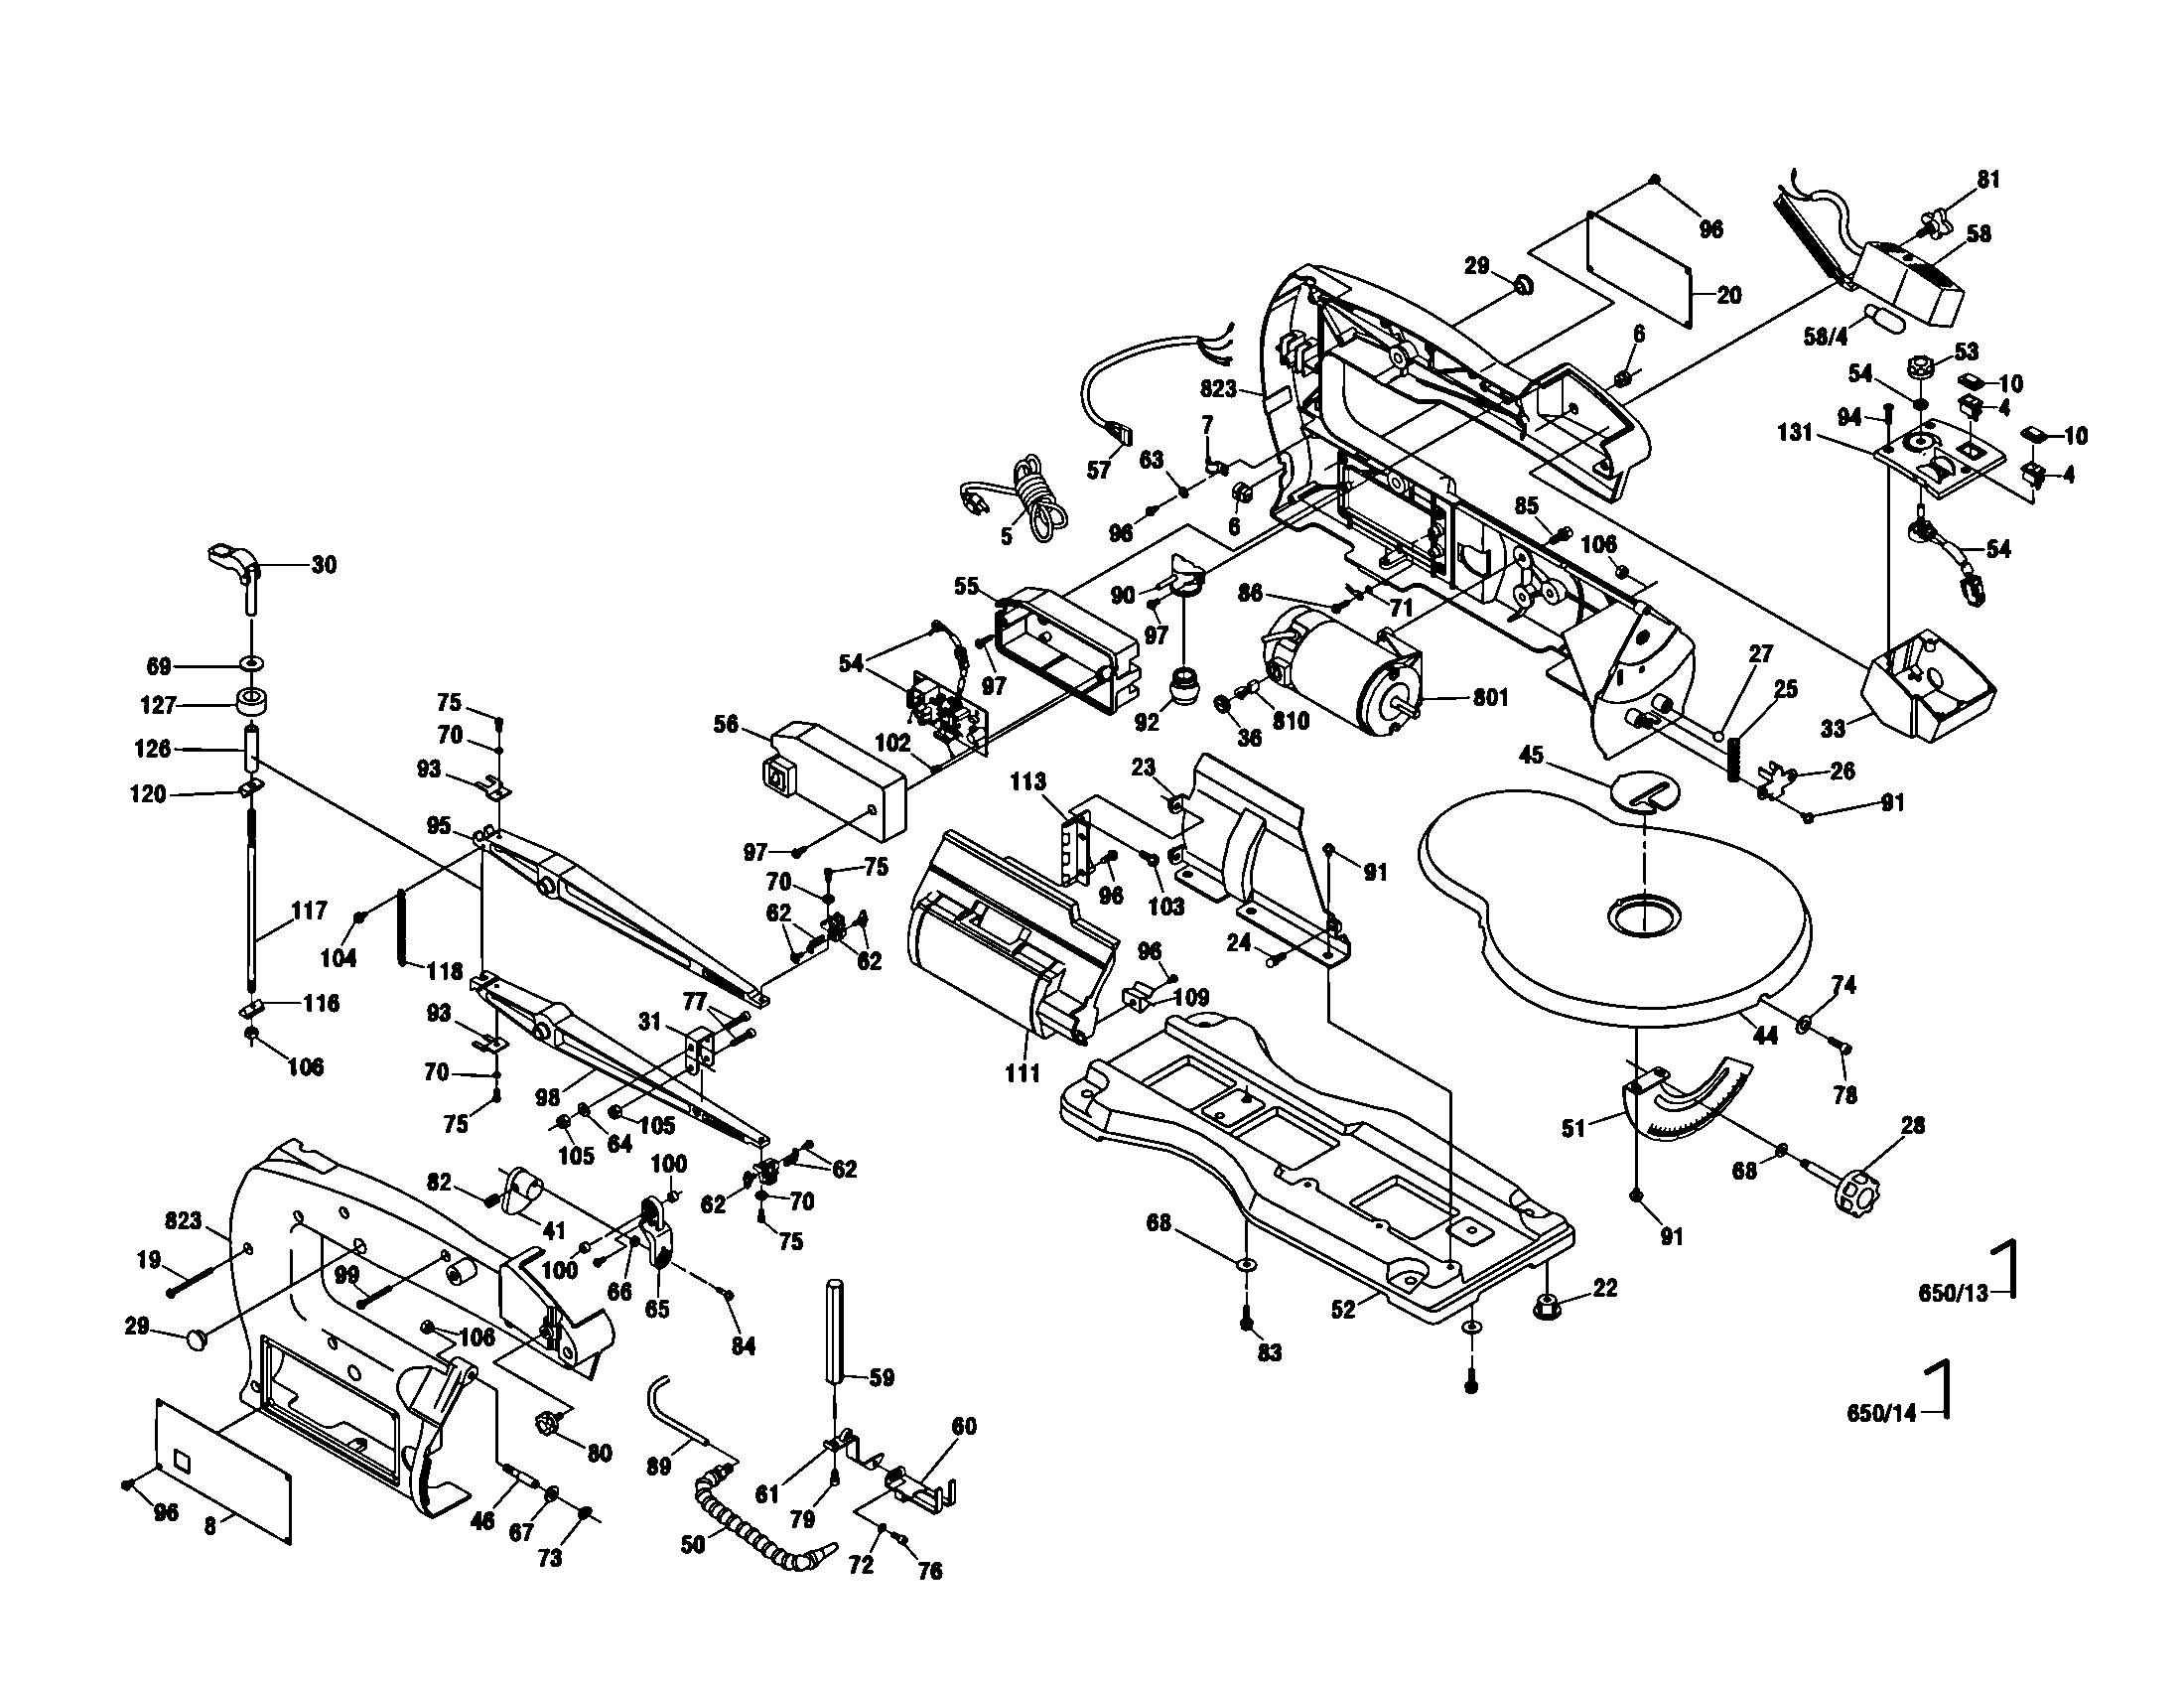 Dremel Tool Parts Diagram | Dremel Parts Diagram Wiring Schematic Diagram